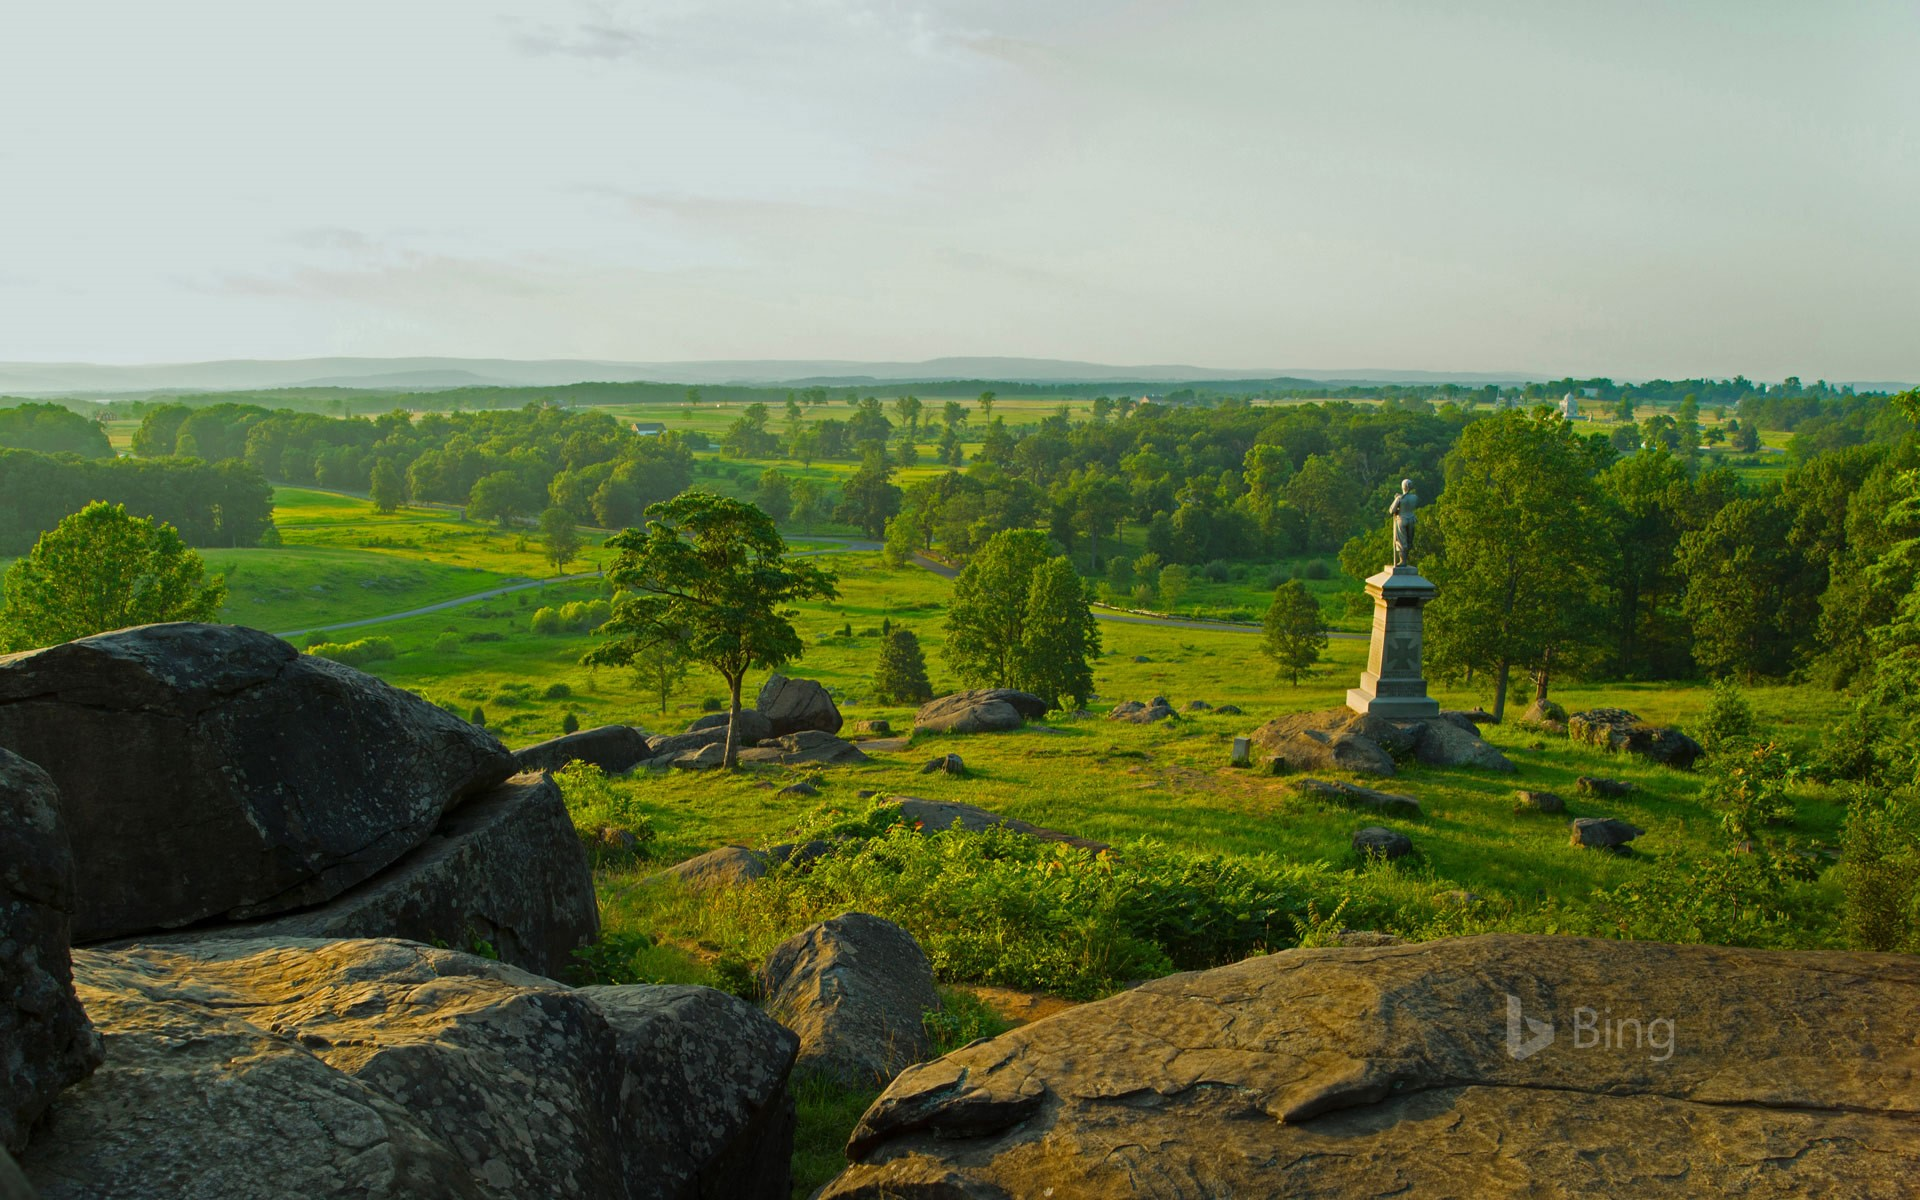 The monument to the 155th Pennsylvania Infantry at Gettysburg, Pennsylvania